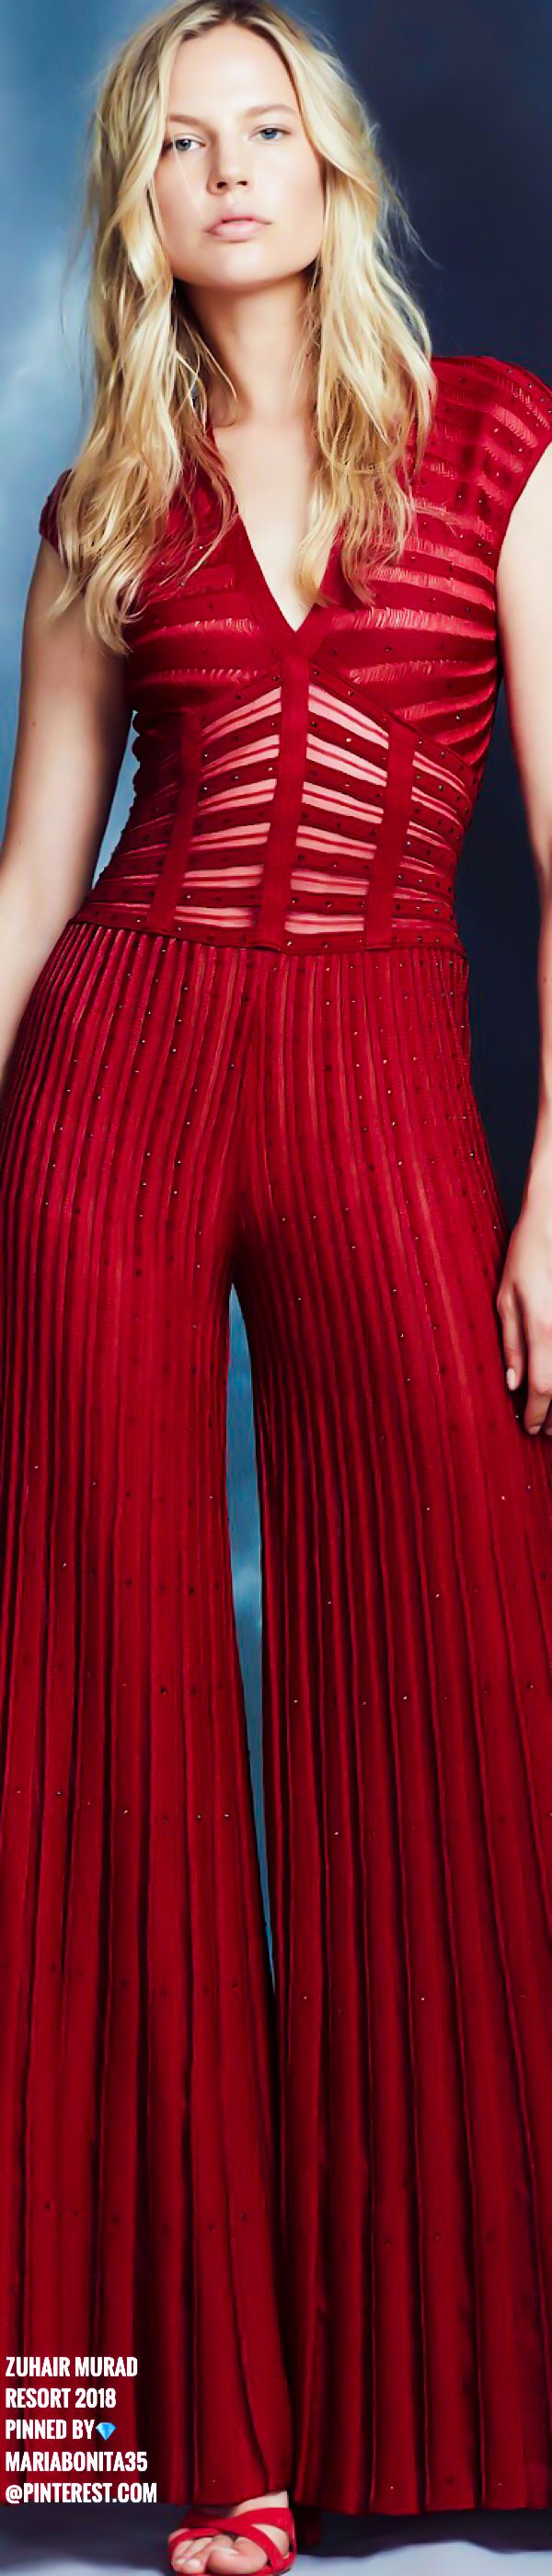 Zuhair Murad Resort 2018